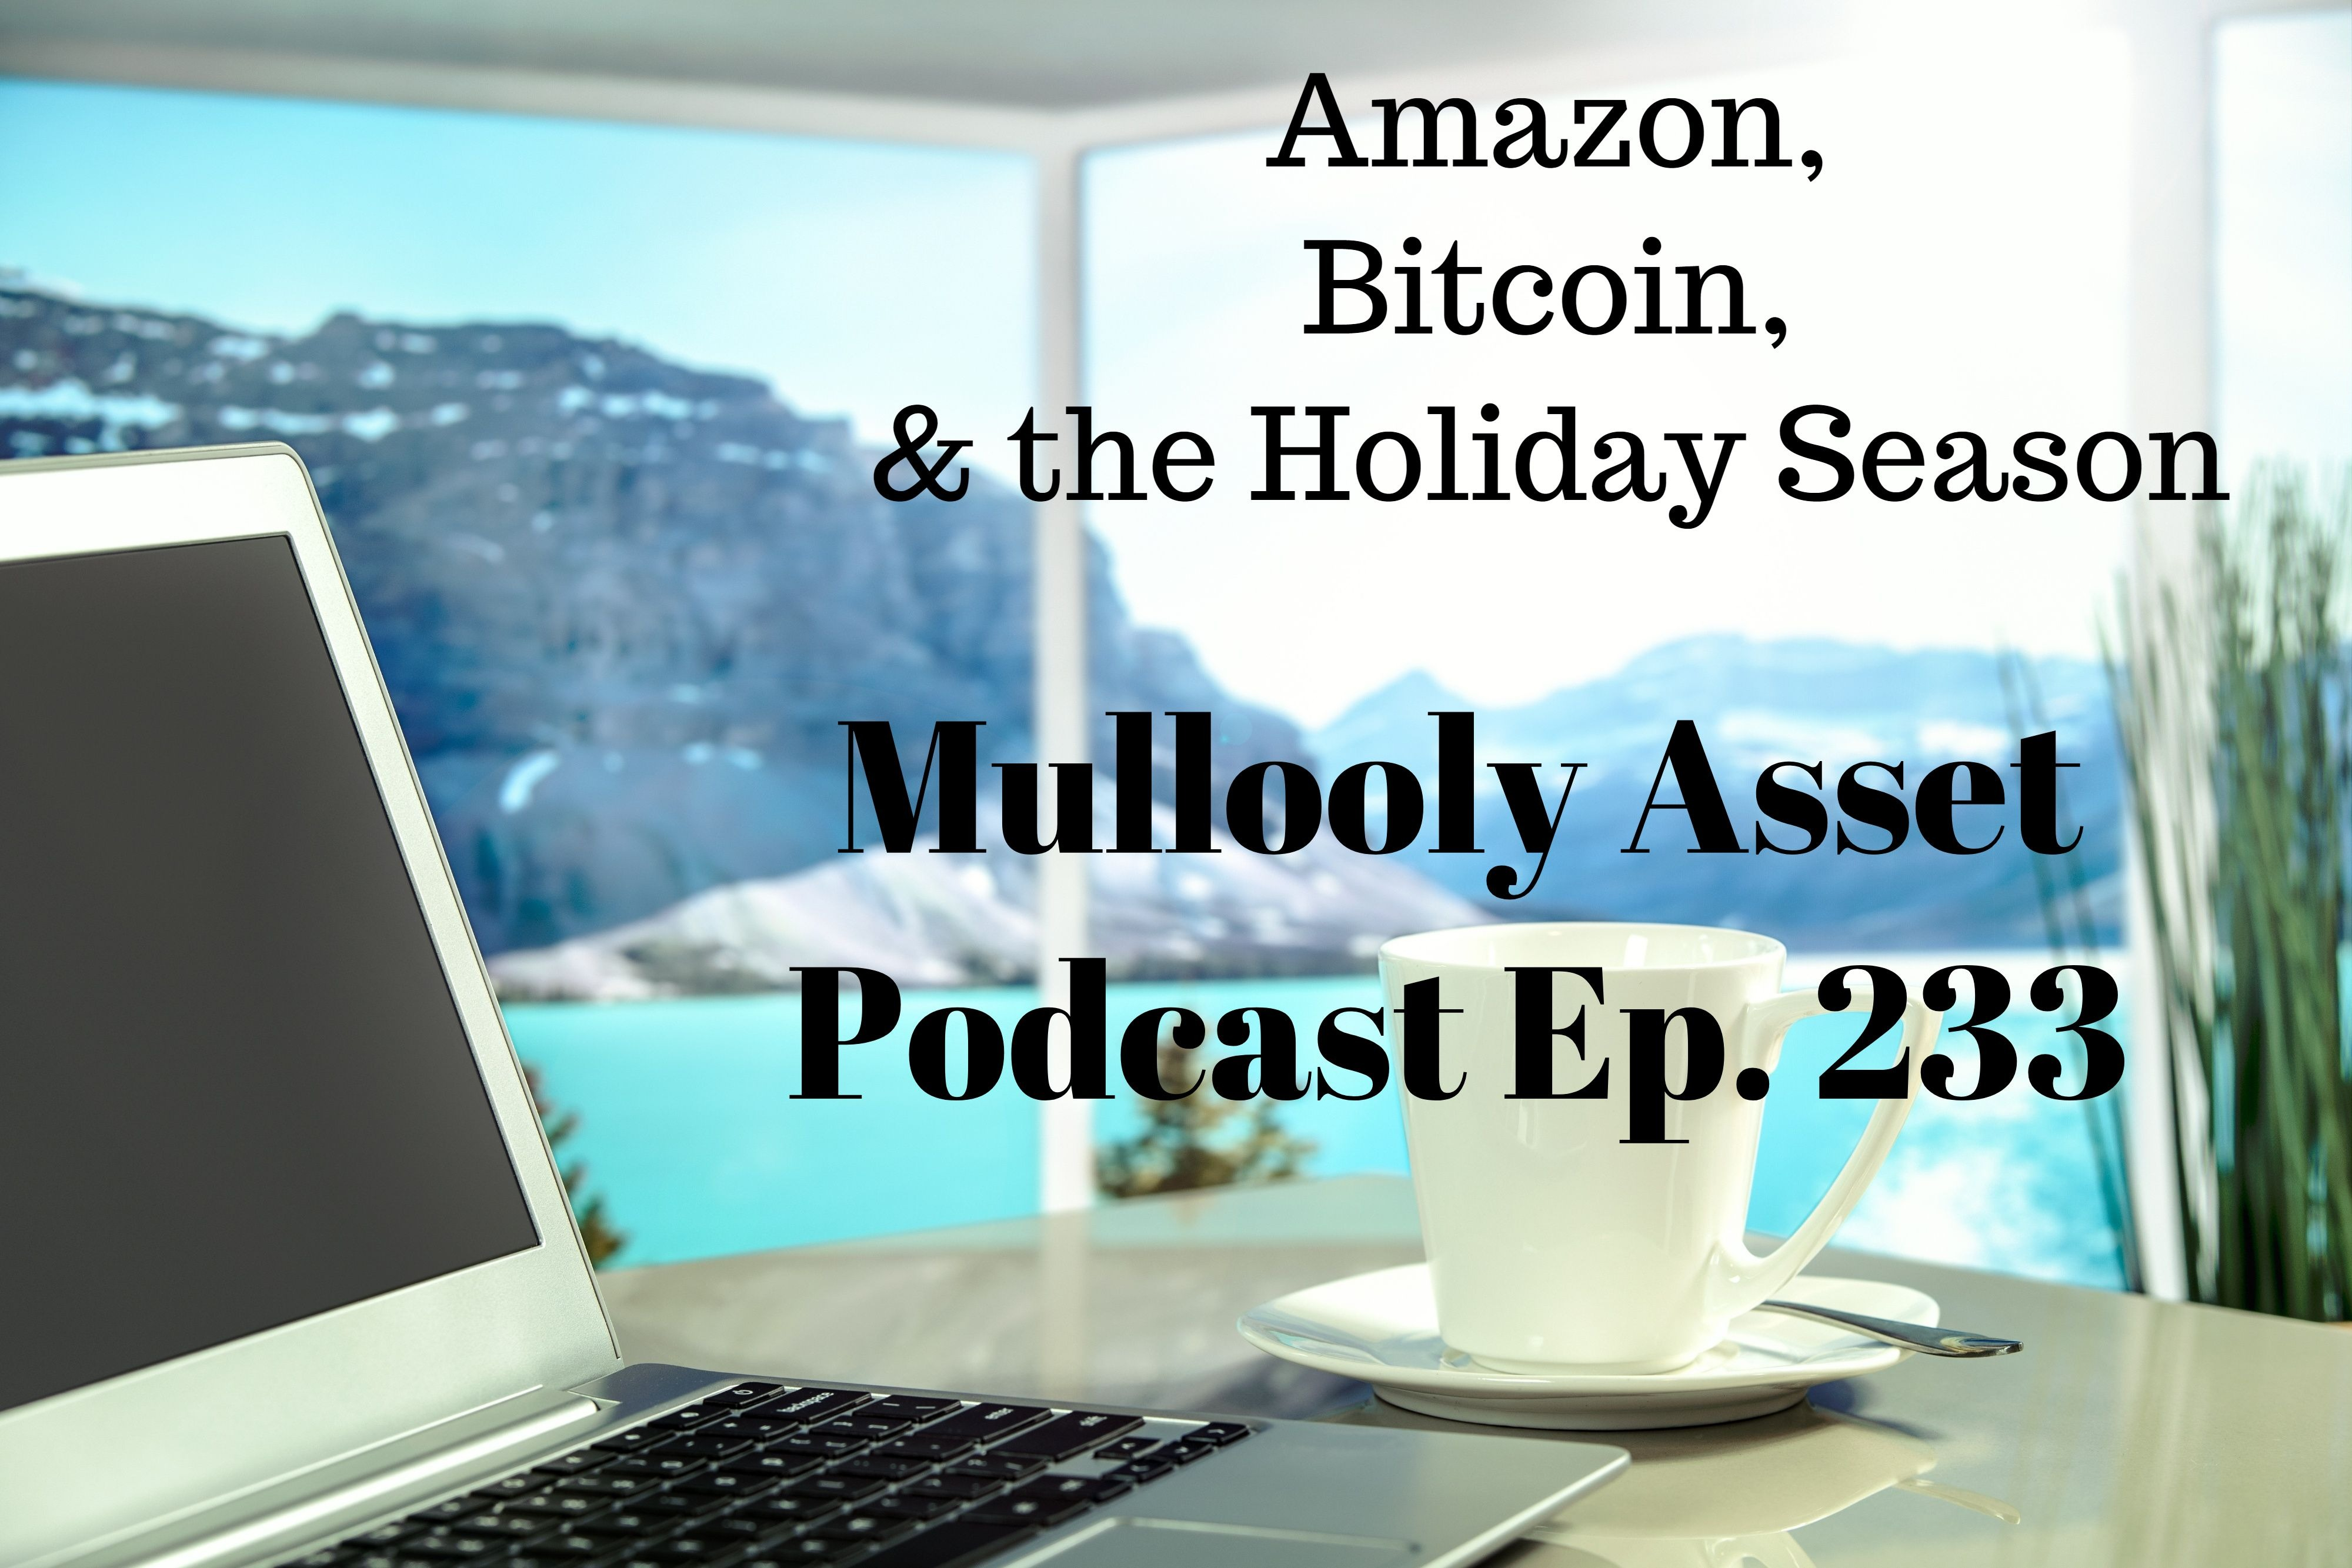 Ep. 233: Amazon, Bitcoin, & the Holiday Season